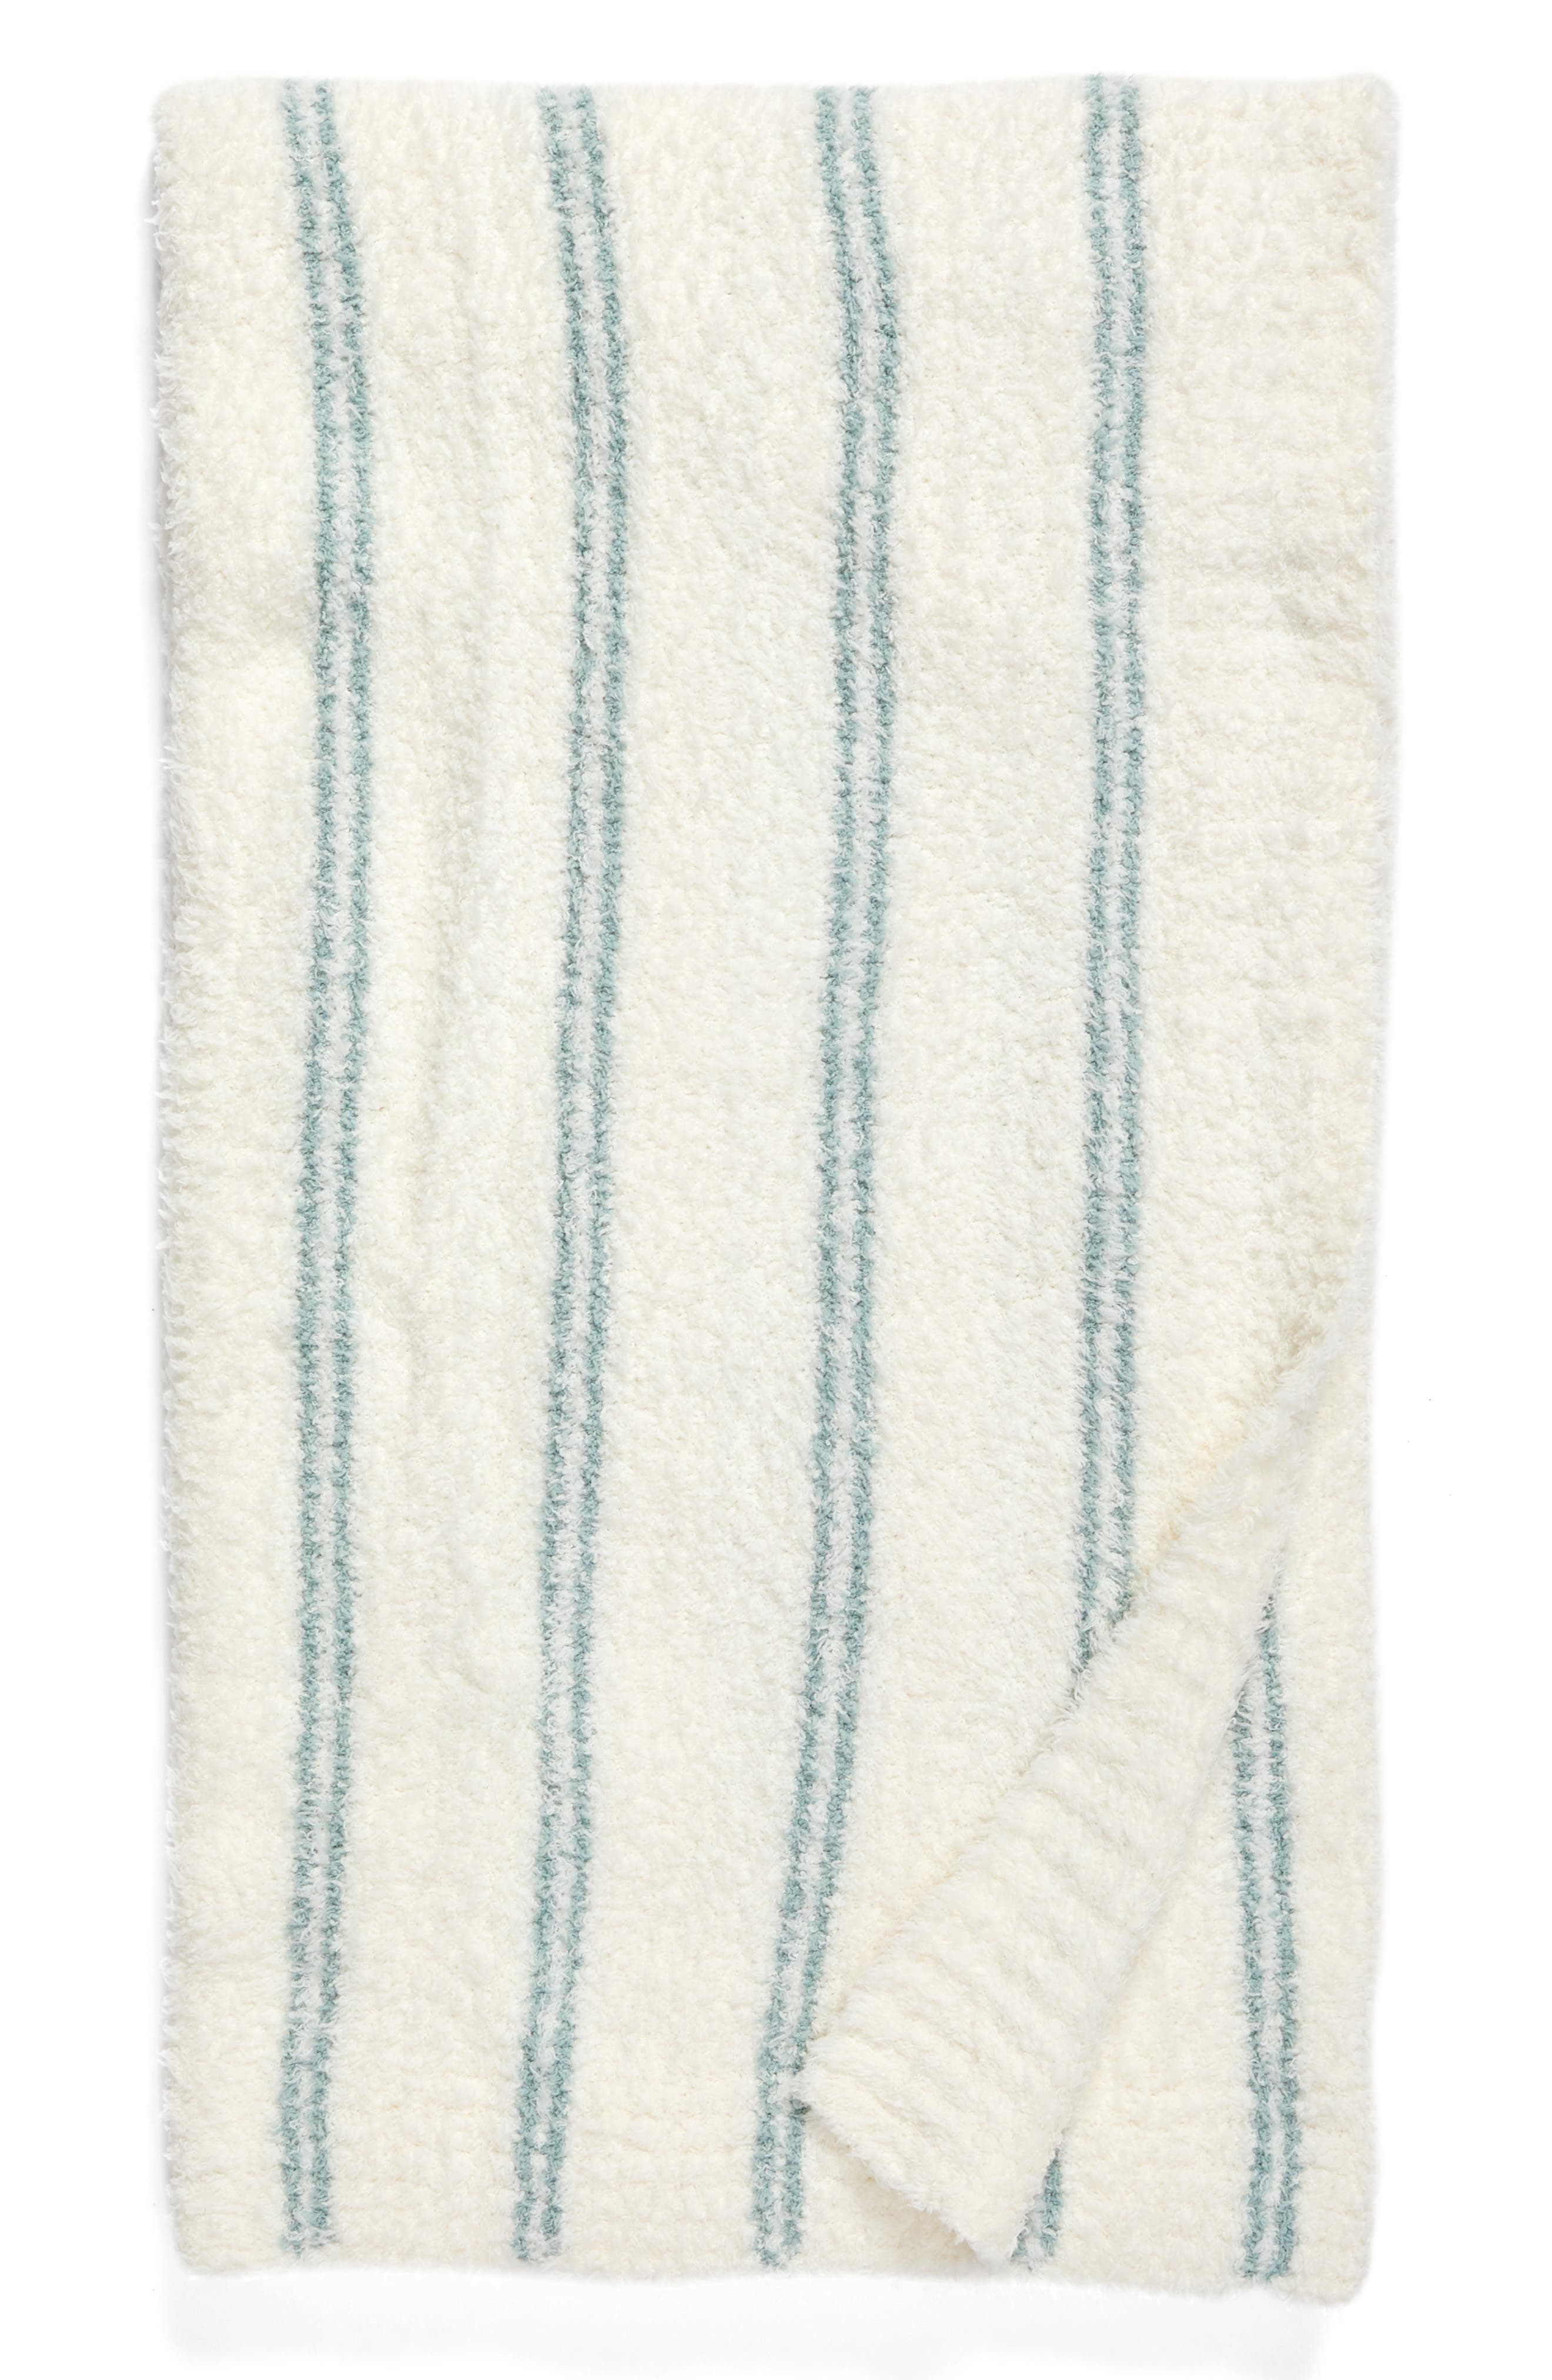 Cozychic<sup>®</sup> Vertical Stripe Throw Blanket,                             Main thumbnail 1, color,                             Pearl/ Blue Wave